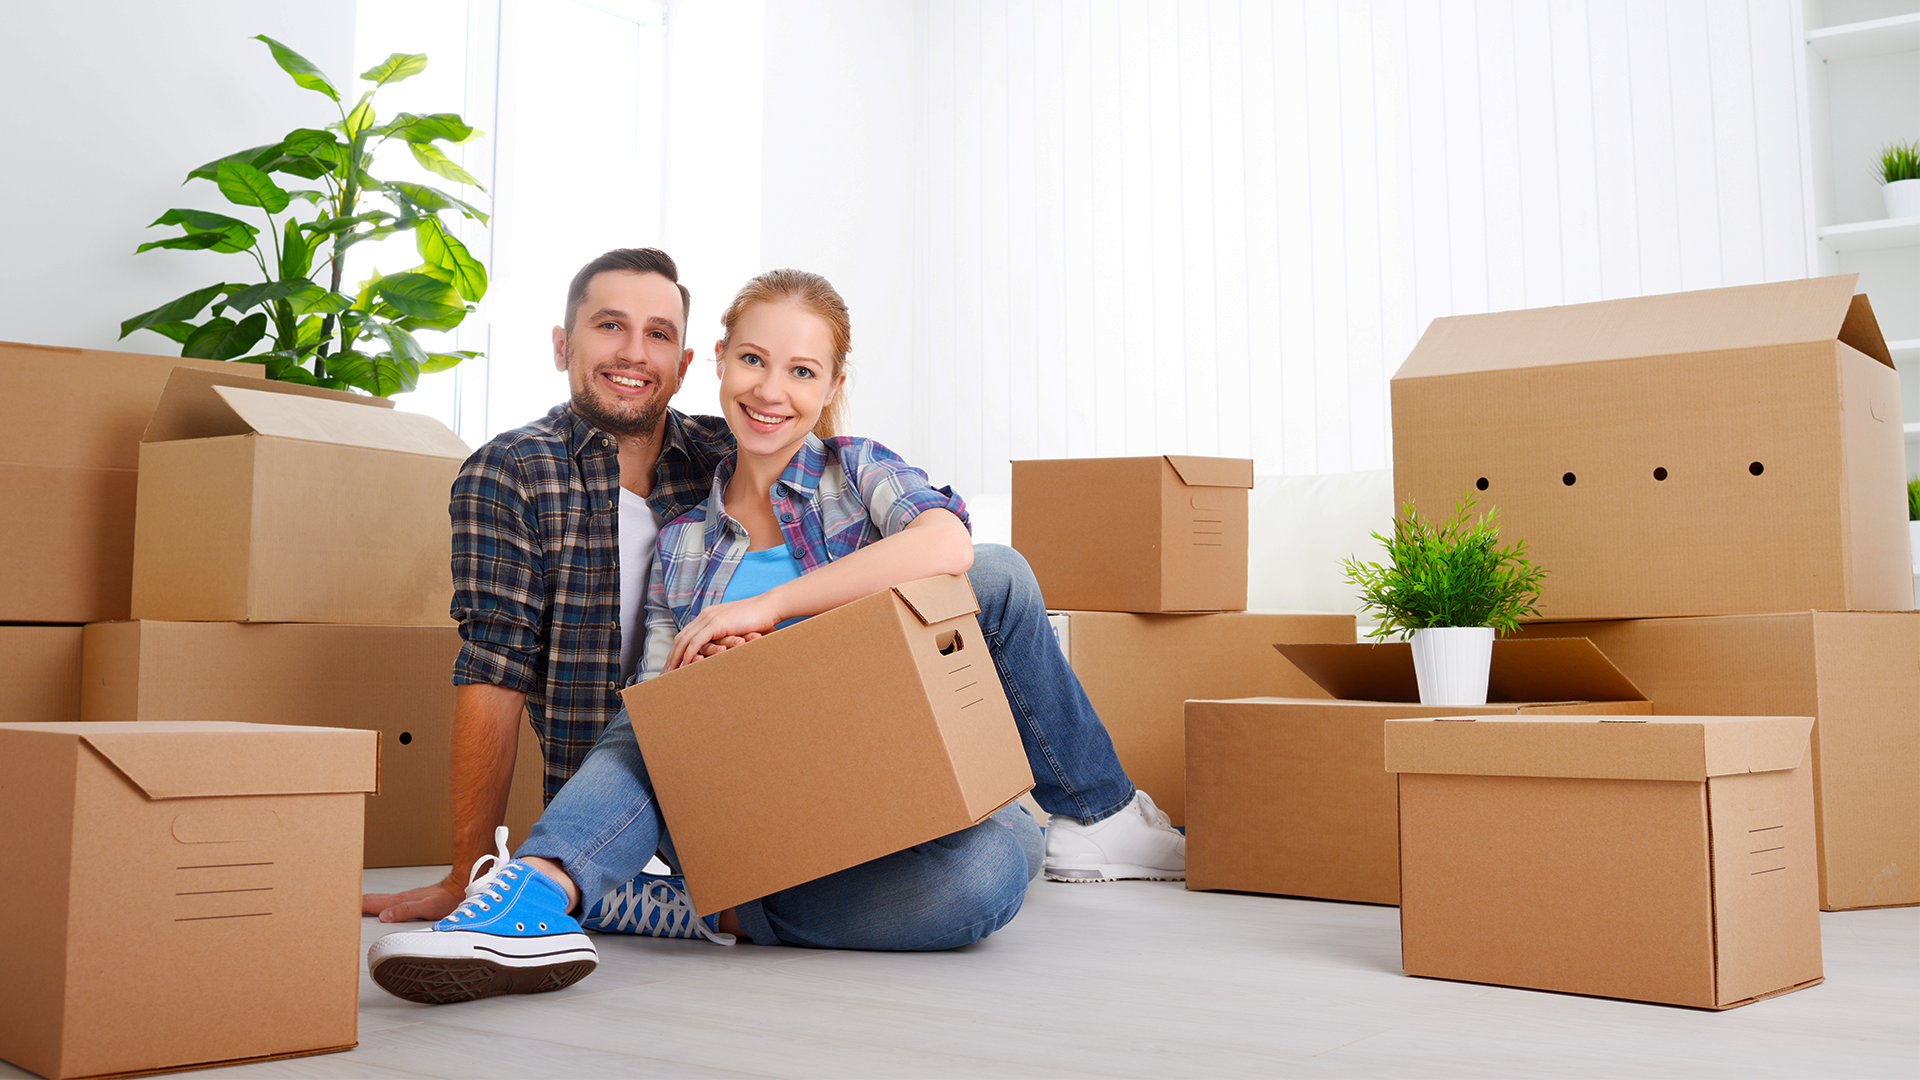 Things to know about while choosing moving companies